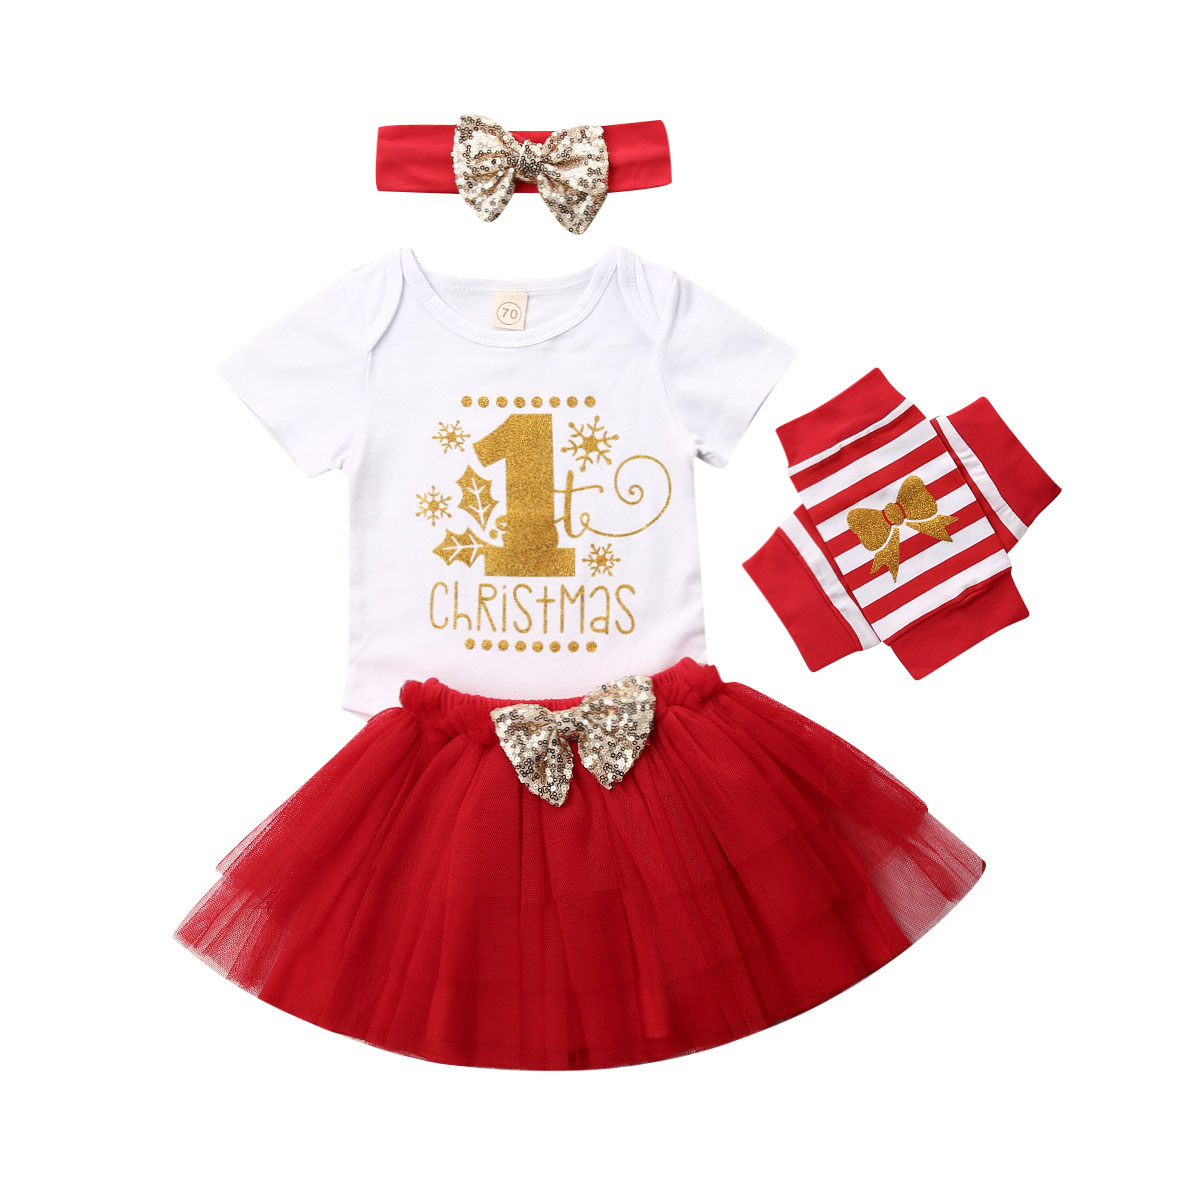 4PC Fashion Infant My Baby First Christmas Outfit Romper Tutu Skirt Headband Set